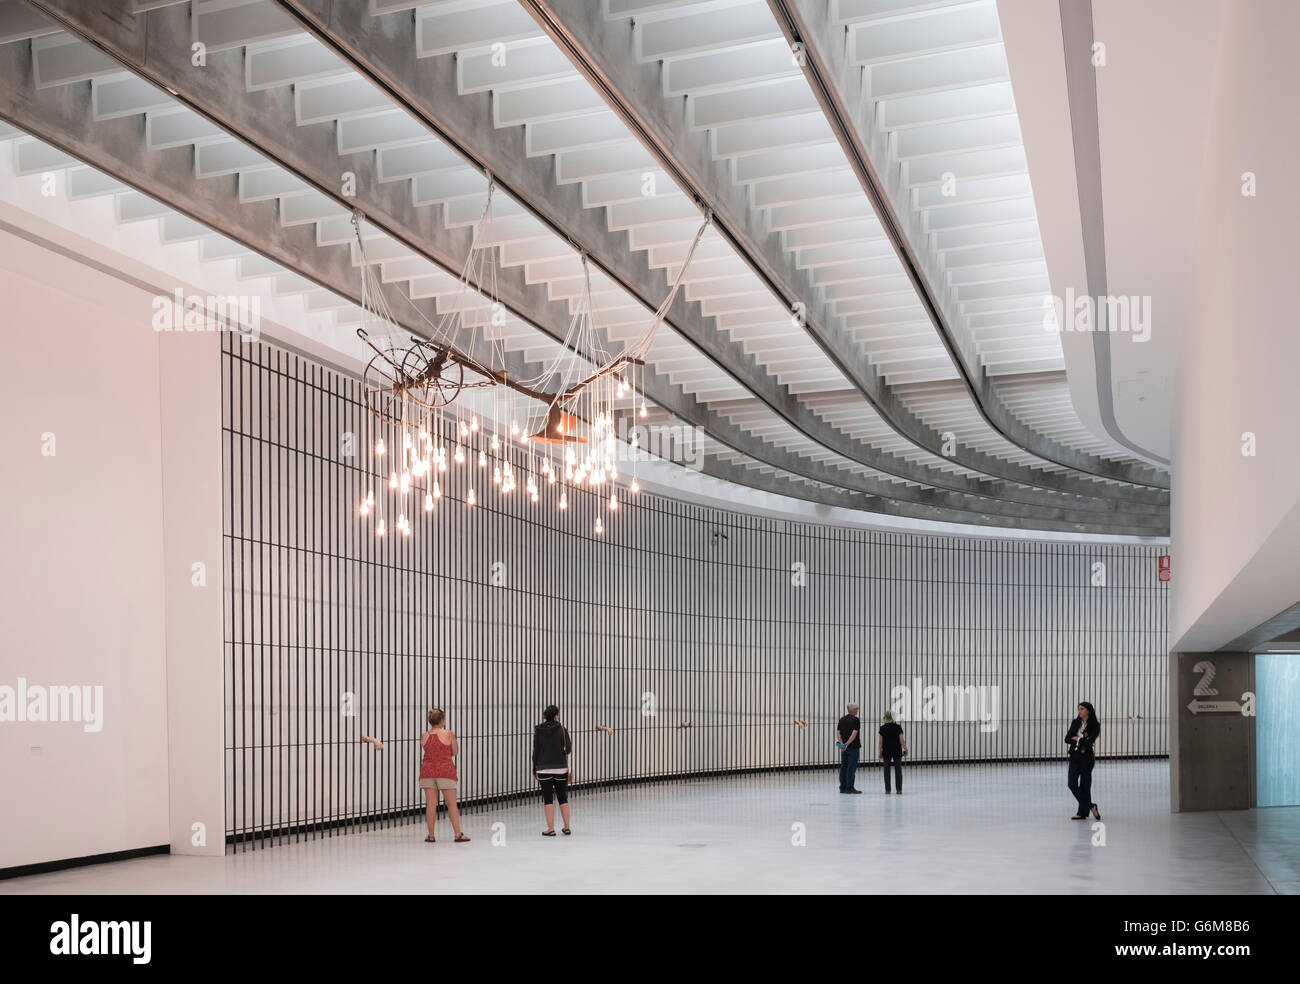 Interior of MAXXI National Centre of Contemporary Arts designed by Zaha Hadid in Rome, Italy Stock Photo